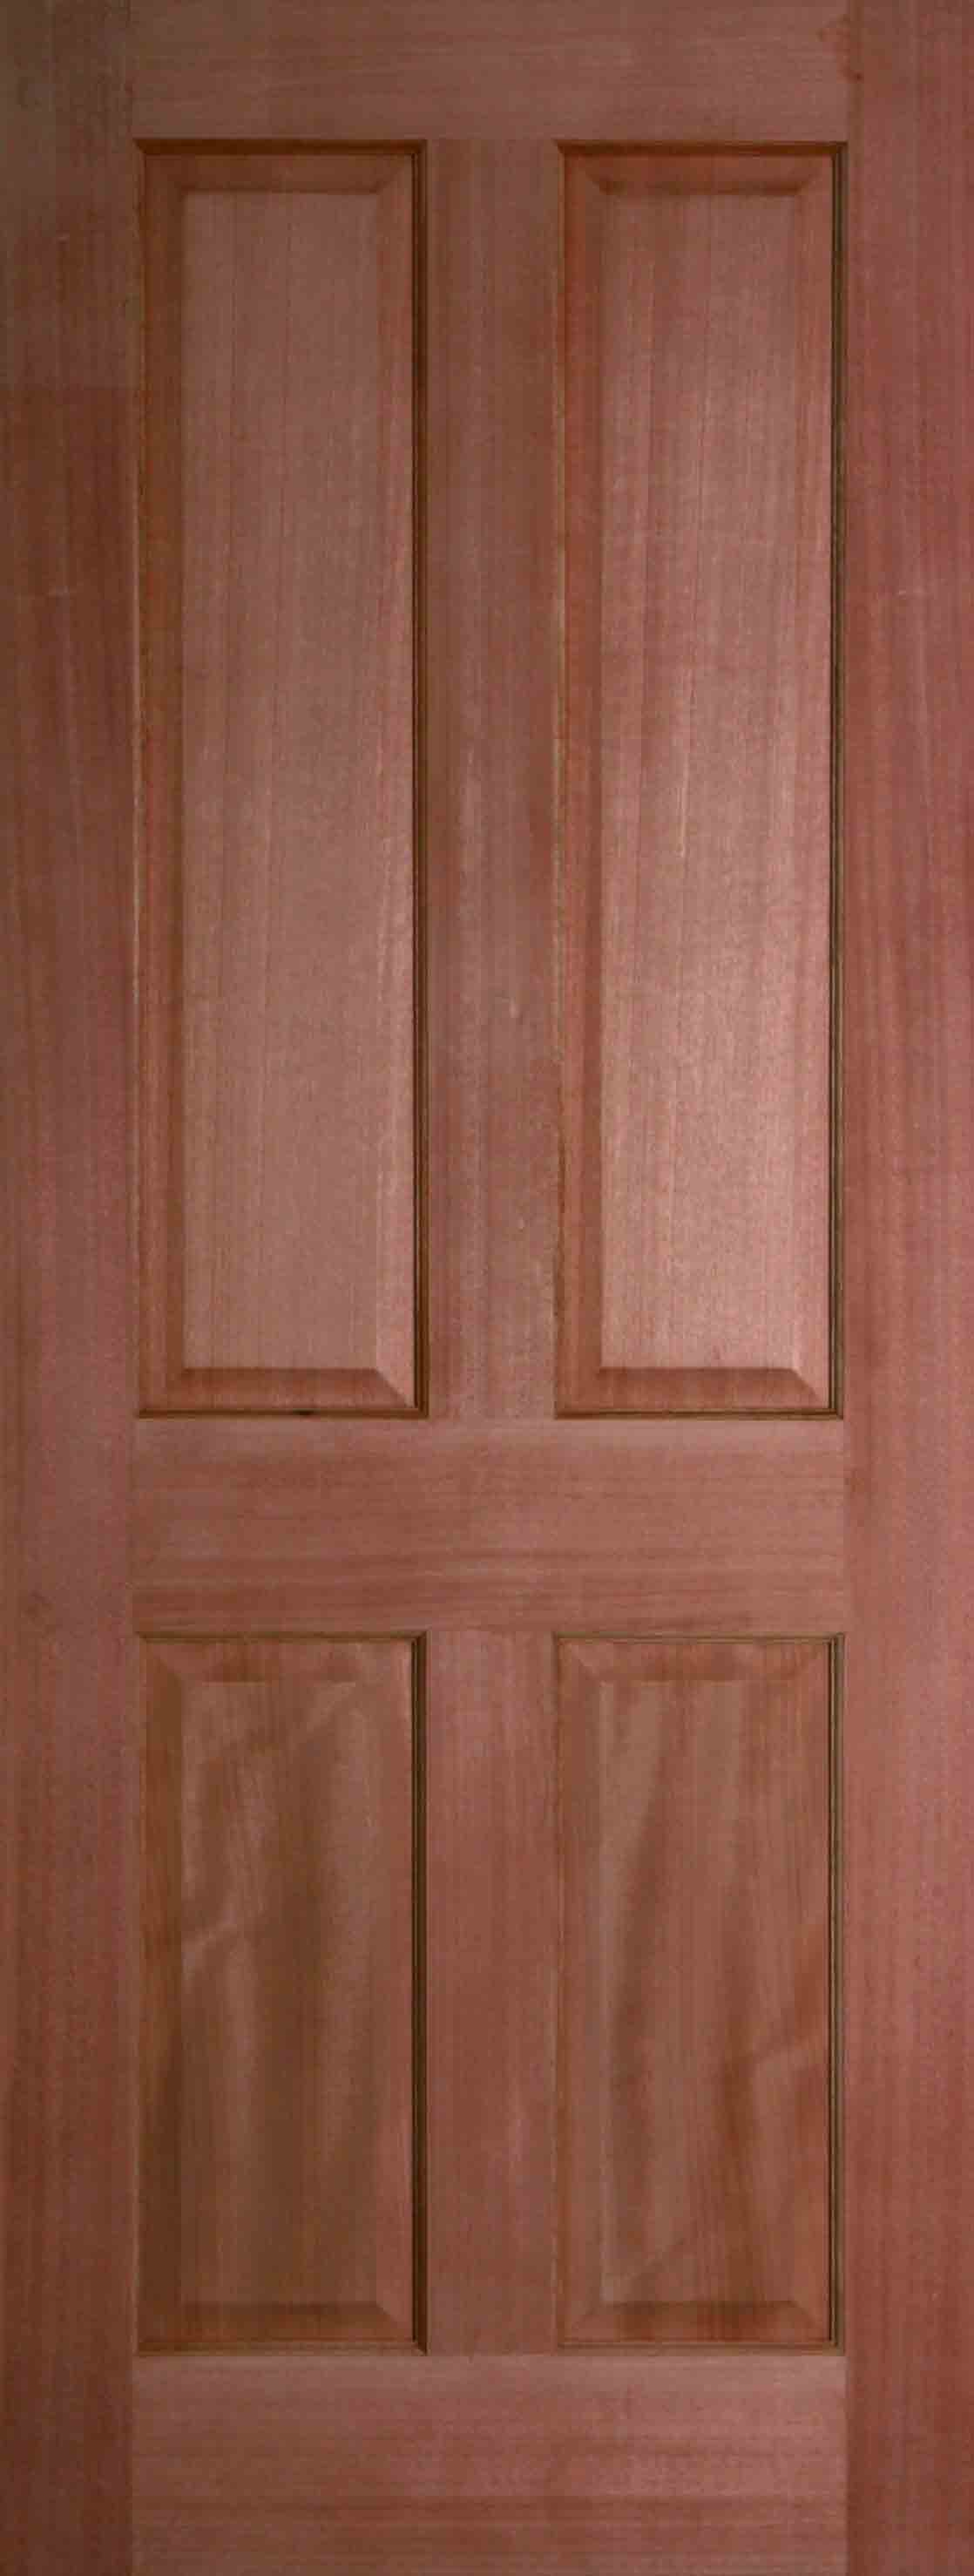 Internal hardwood colonial 4 panel door unfinished finewood for Hardwood doors